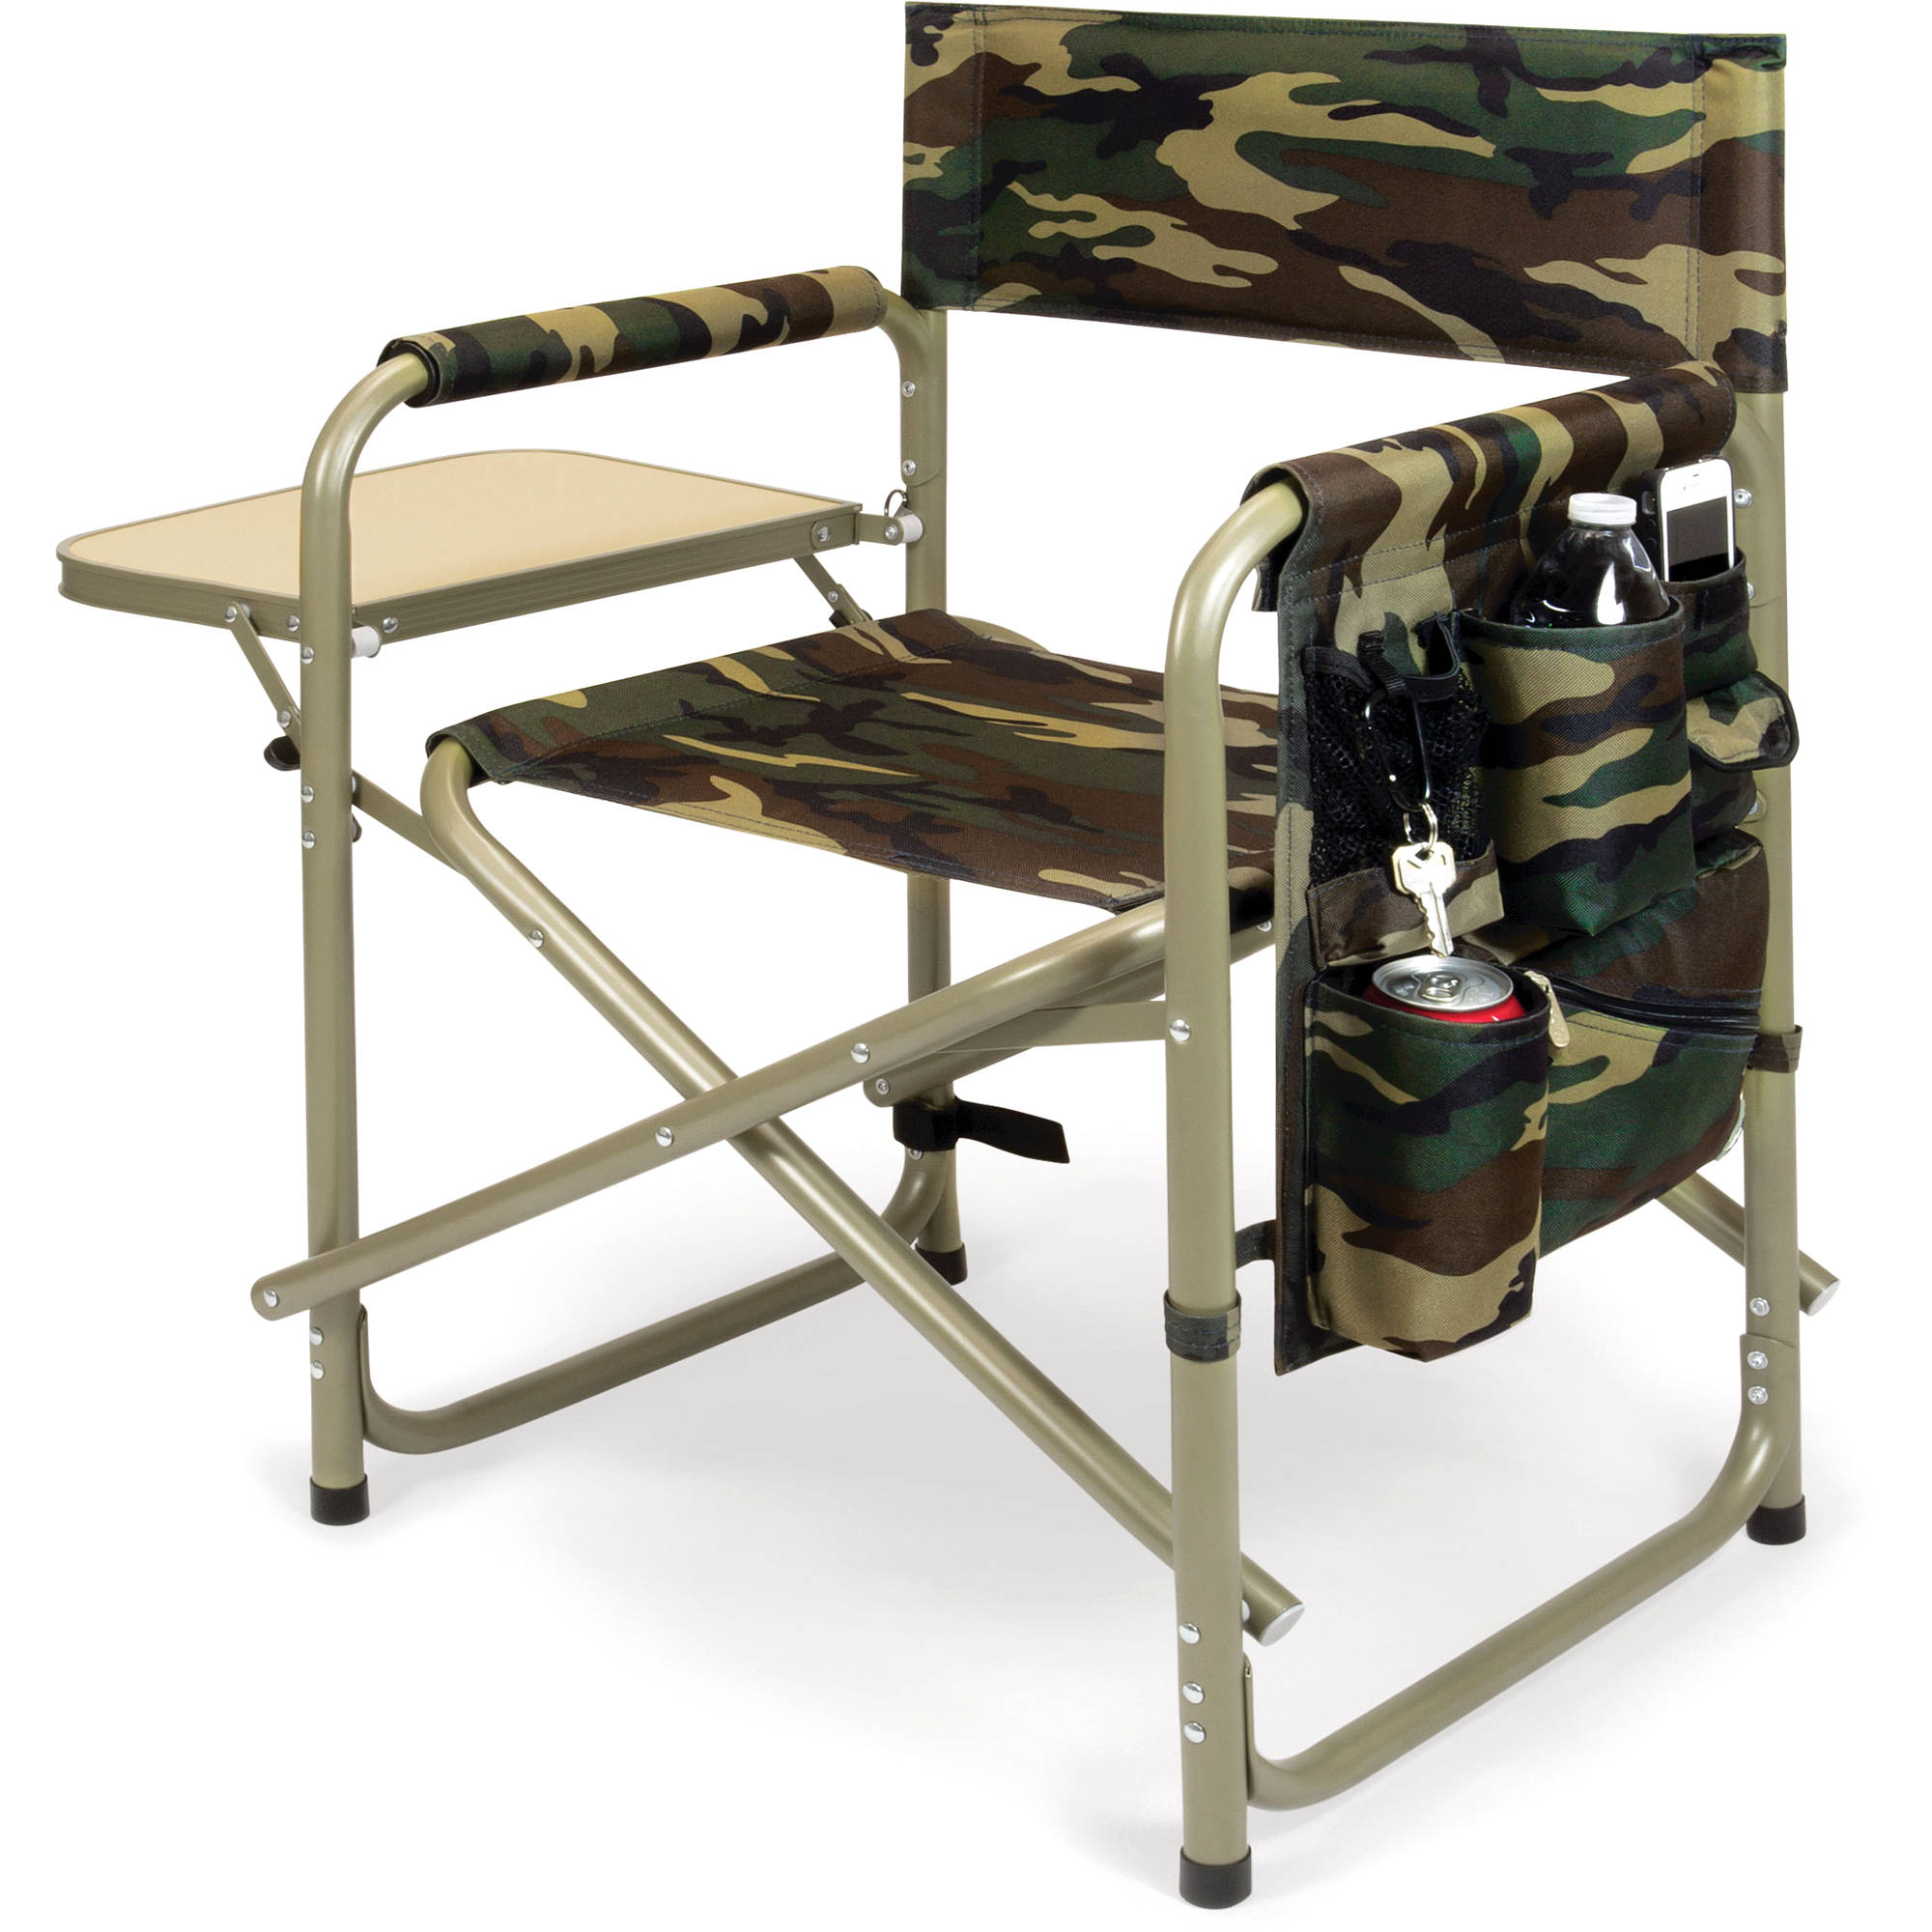 Picnic Time Sports Chair Camo 809 00 182 000 0 B Amp H Photo